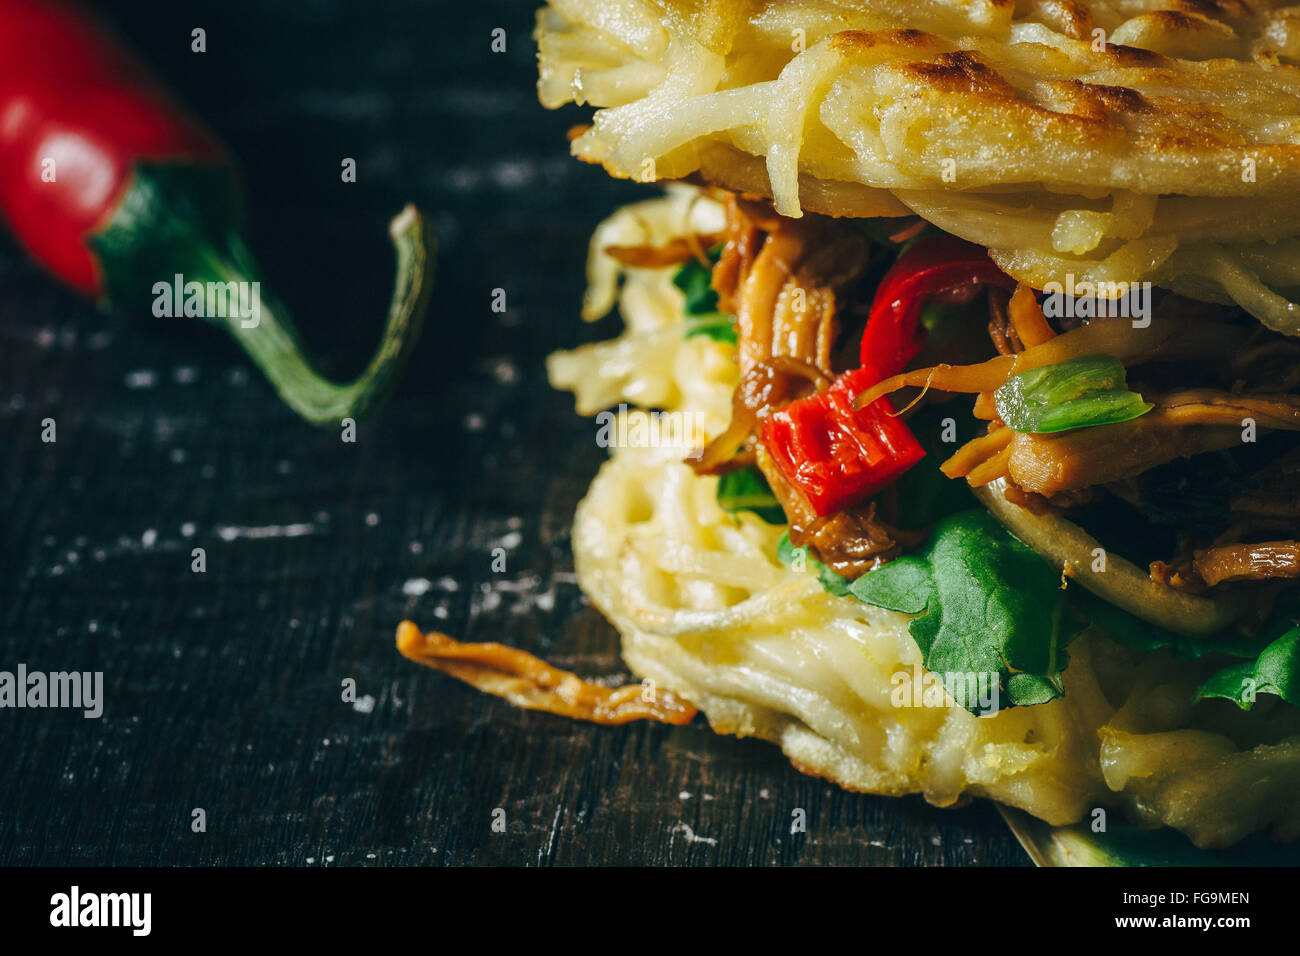 Cropped Image Of Fresh Ramen Burger With Red Chili Pepper - Stock Image